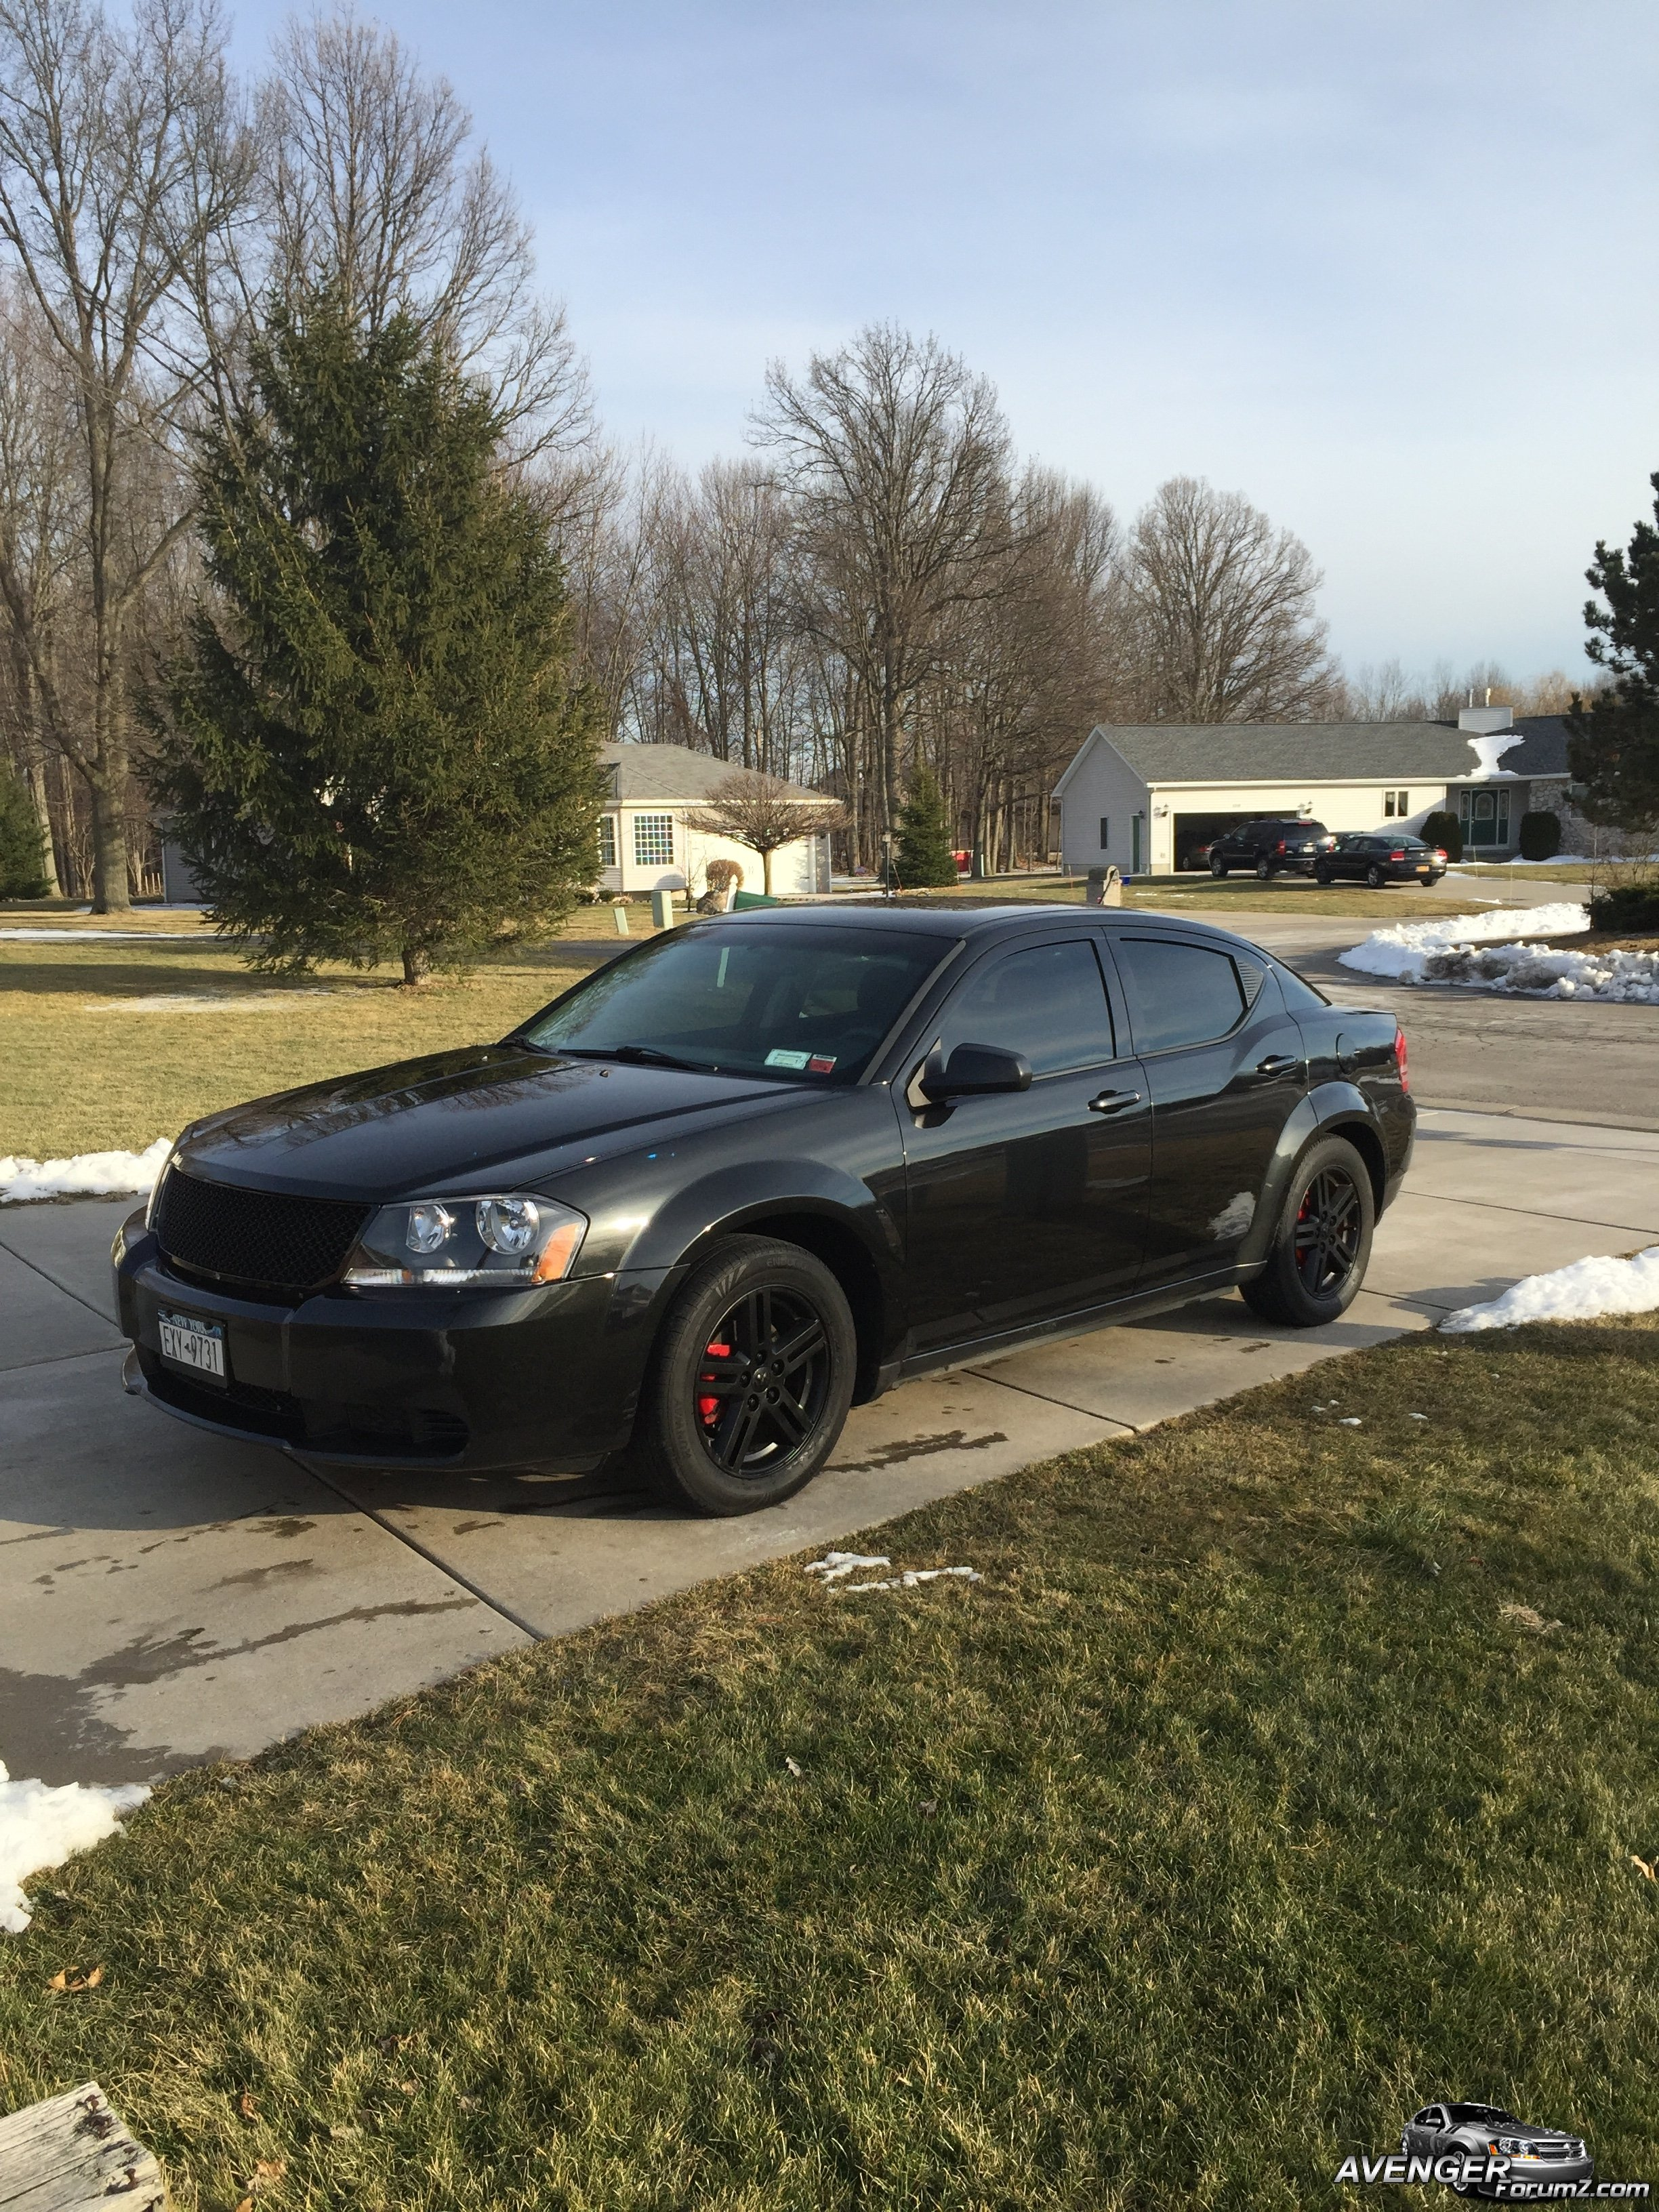 2008 Dodge Avenger Sxt Blacked Out Dodge Avenger Forum